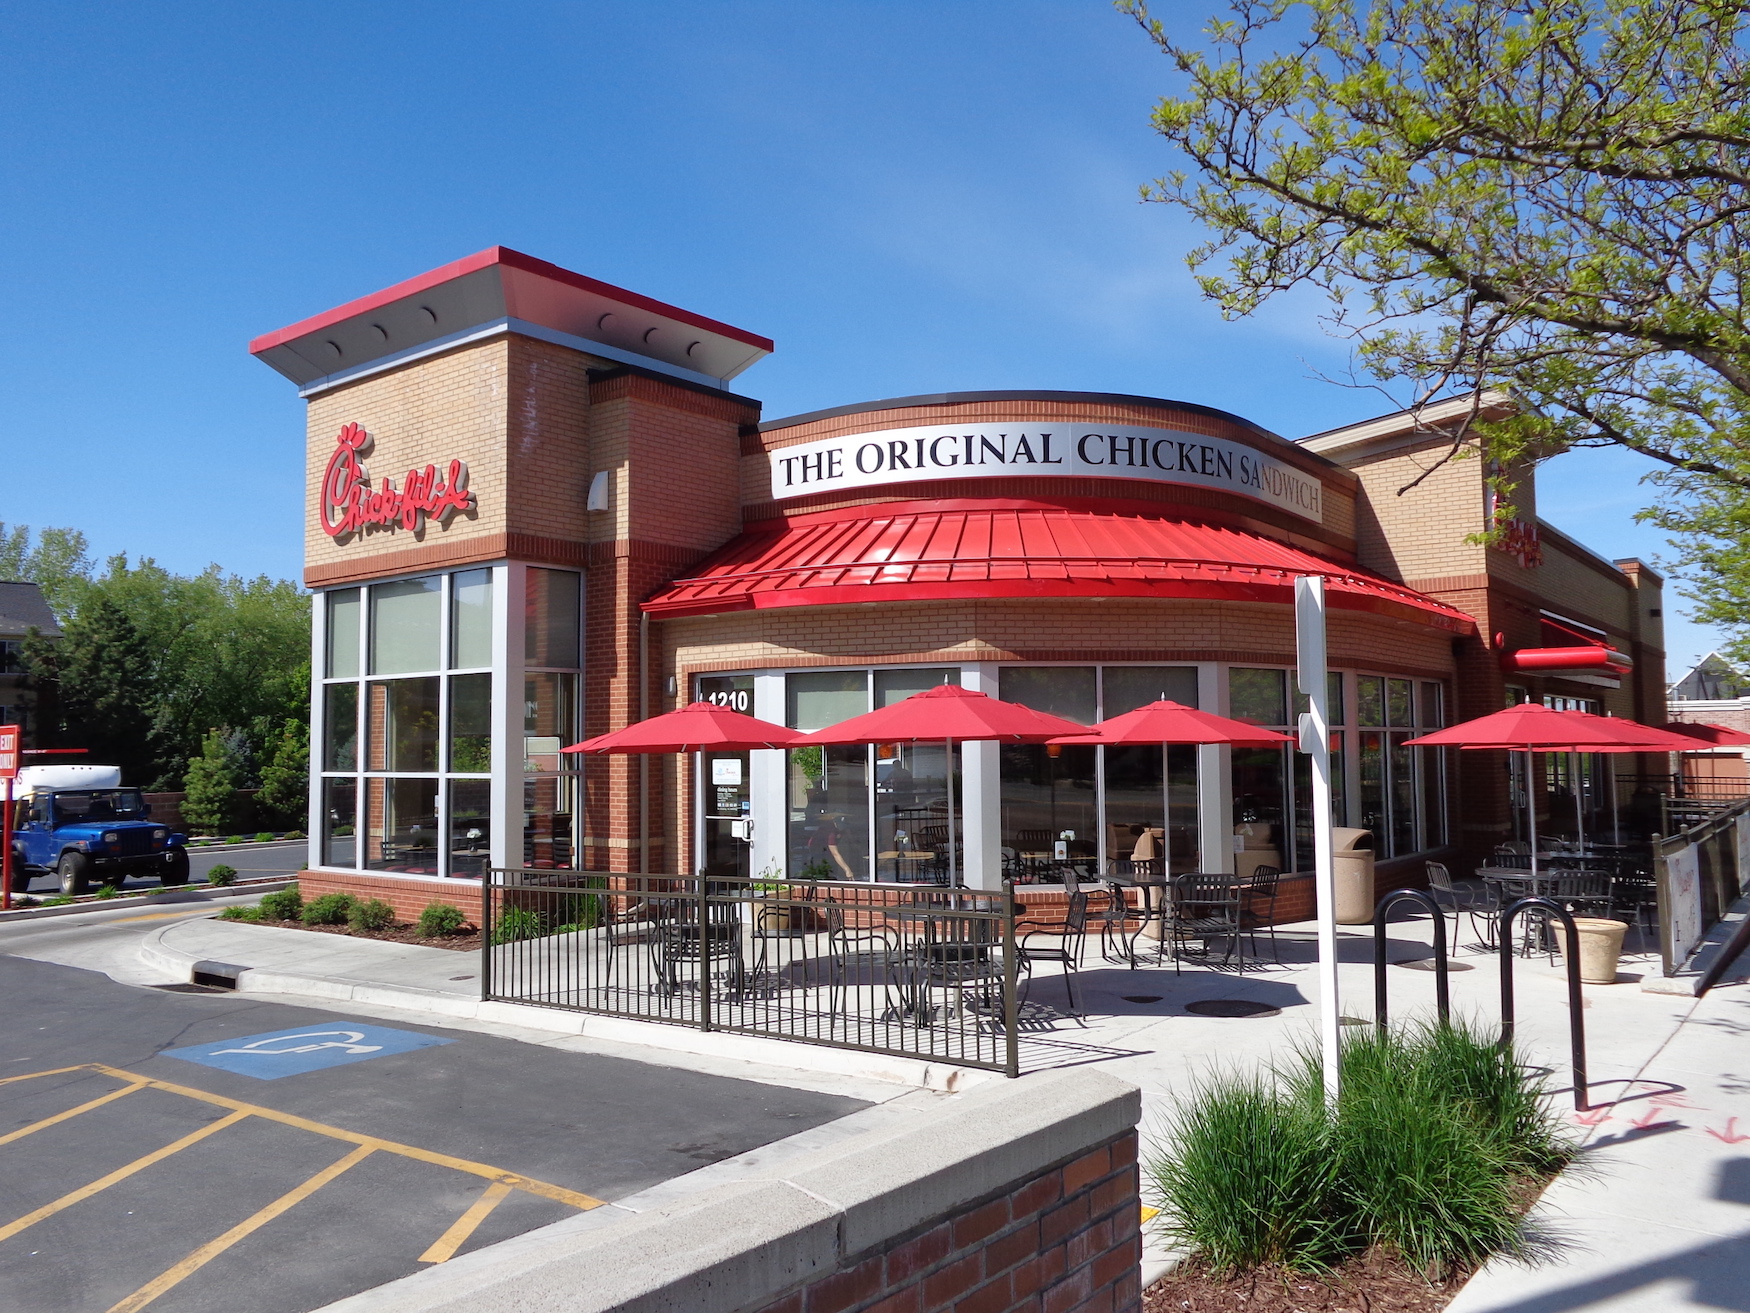 Case Study: Chick-fil-A Revamps Customer Messaging to Deliver Personalized Content with Help of MessageGears/BrightWave